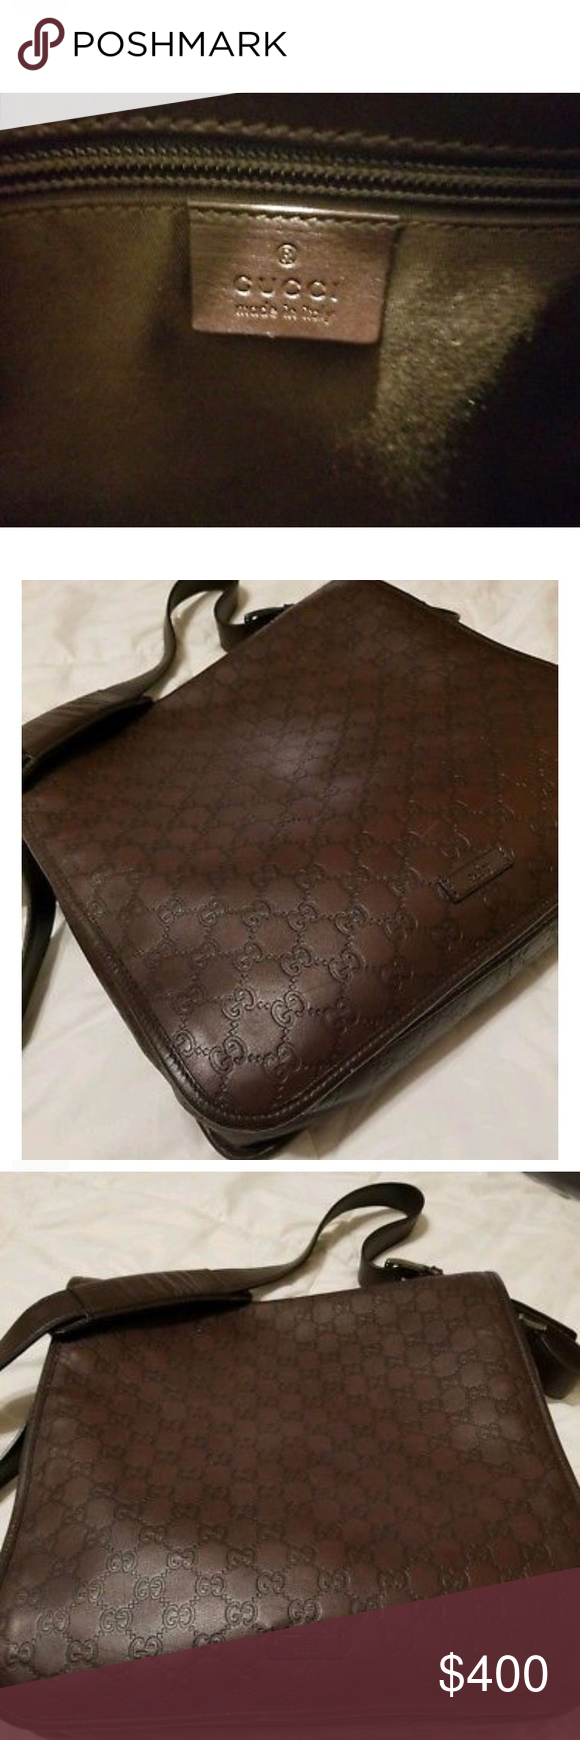 b34152f7607c Gucci Messenger Bag Brown Leather bag. Great Bag didn't wanna sell it Gucci  Bags Messenger Bags